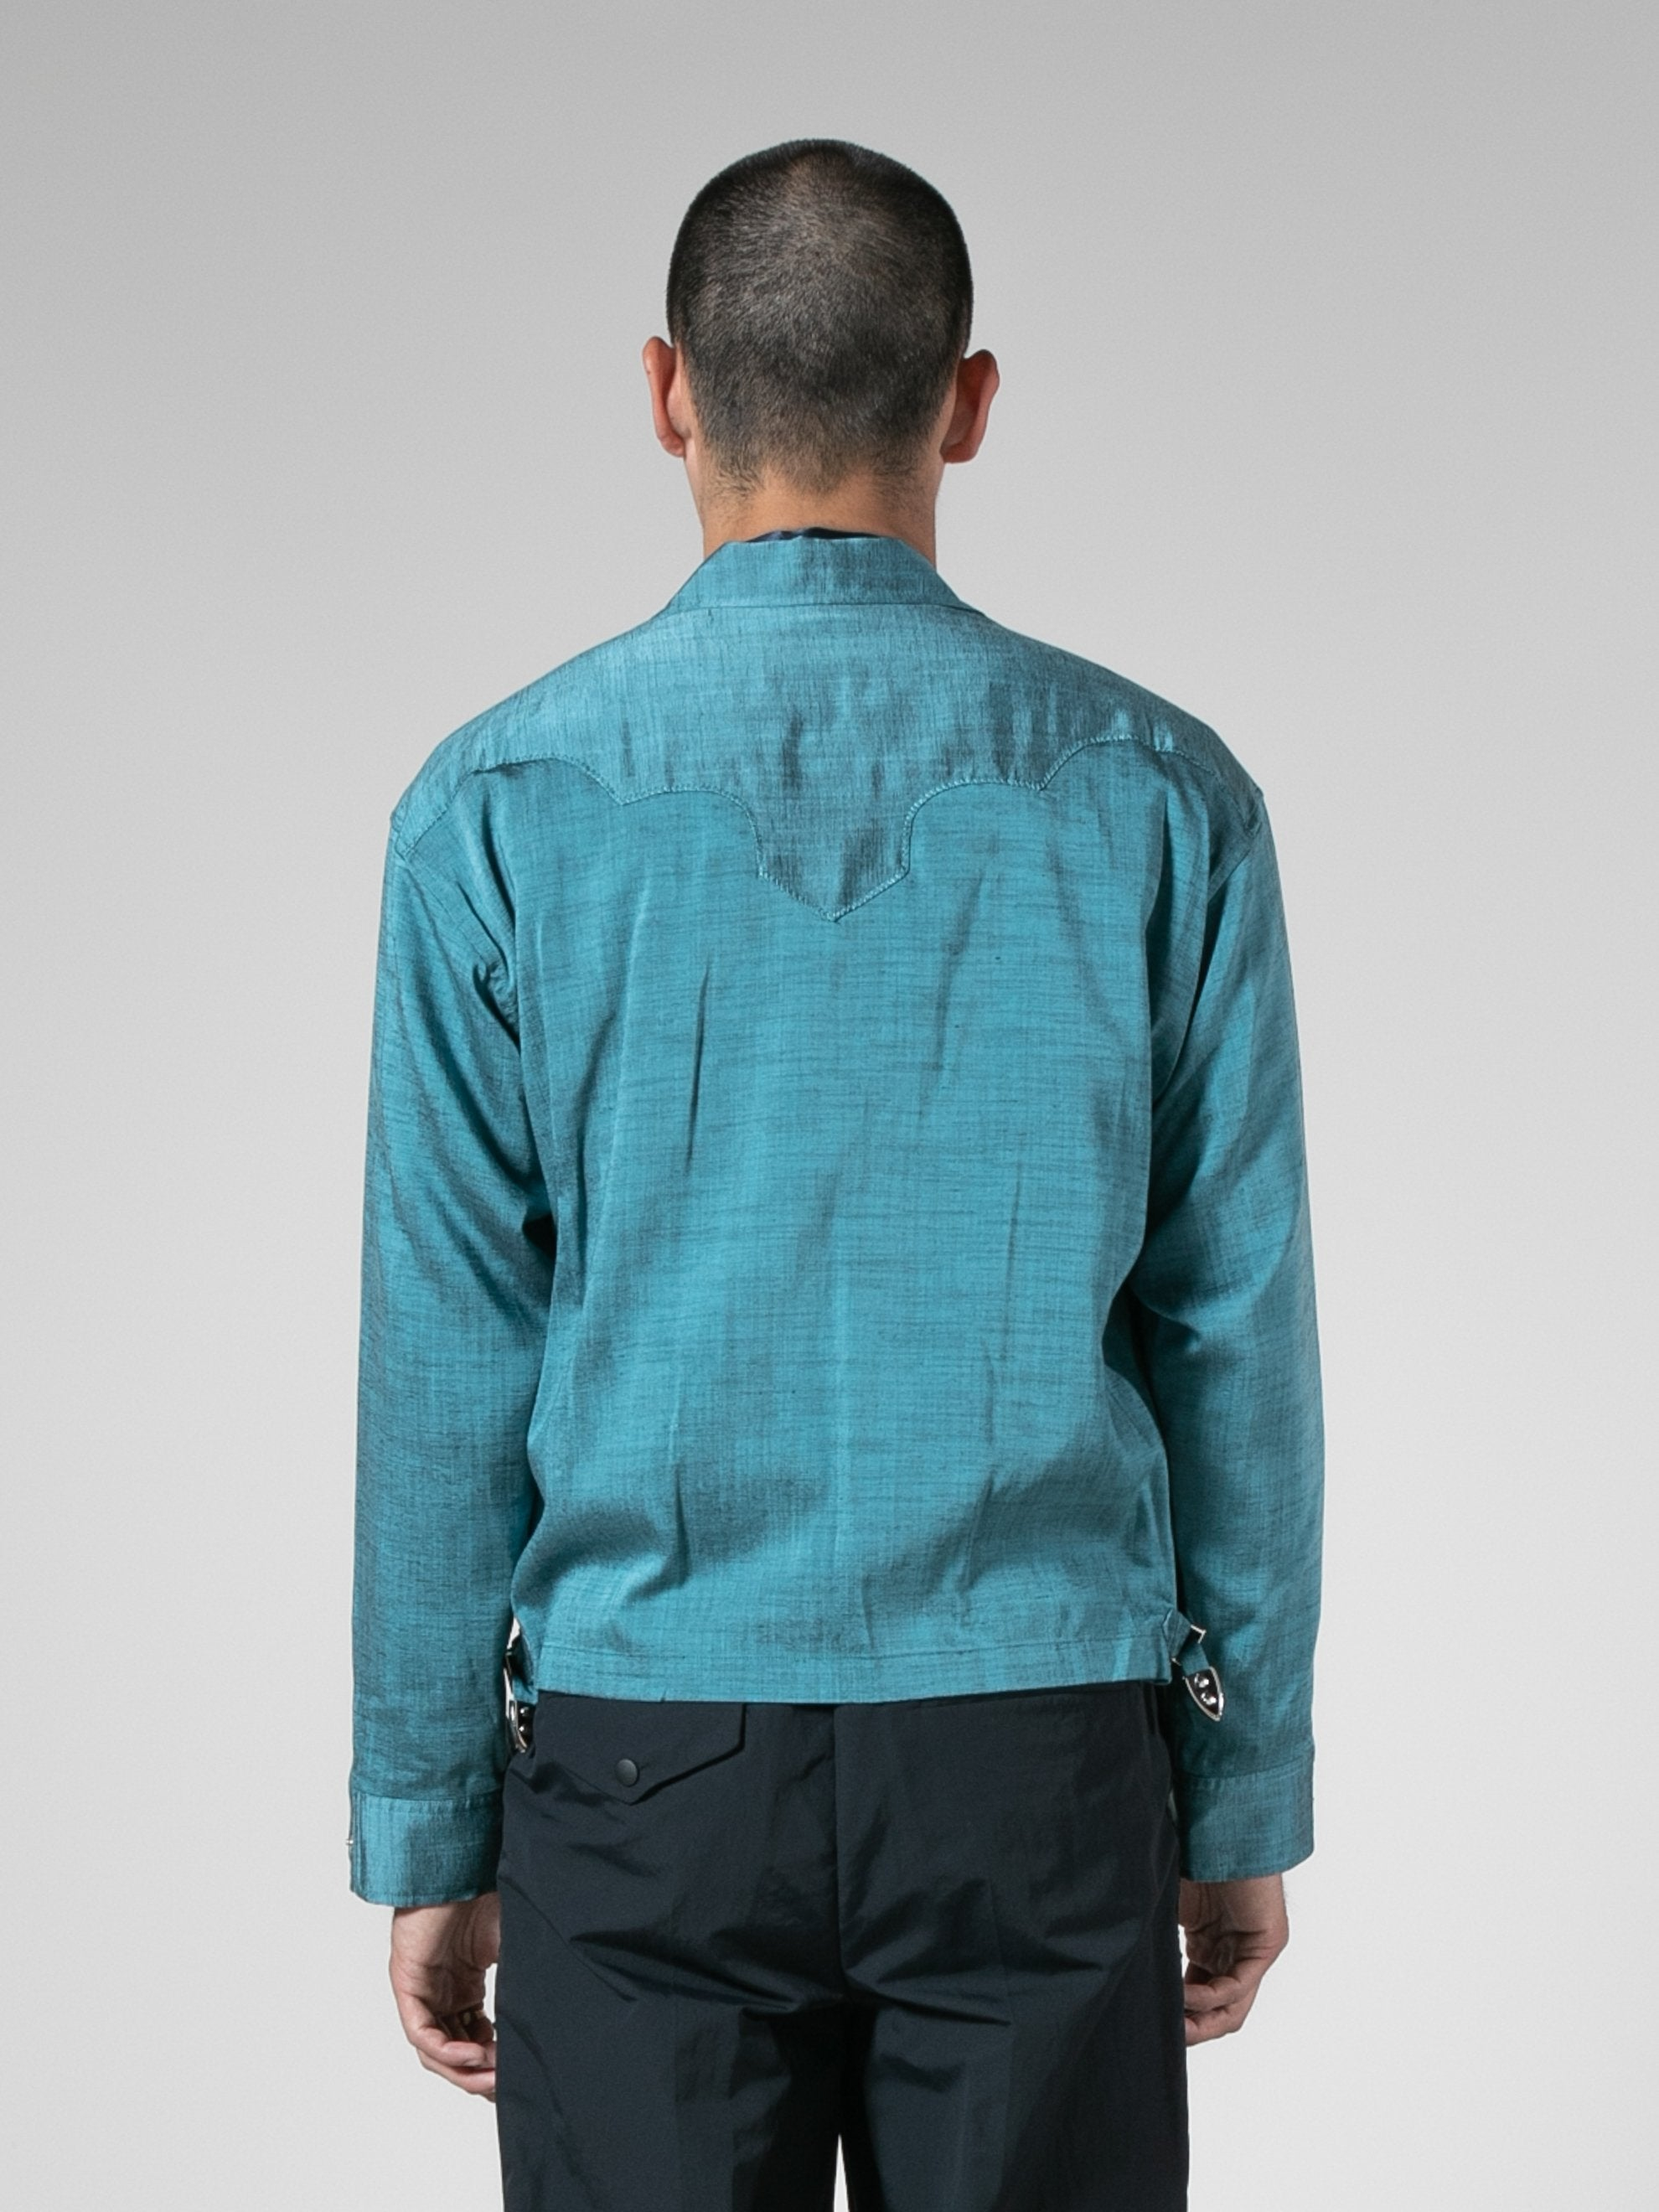 Light Blue Slab Yarn Stretch Blouson 6